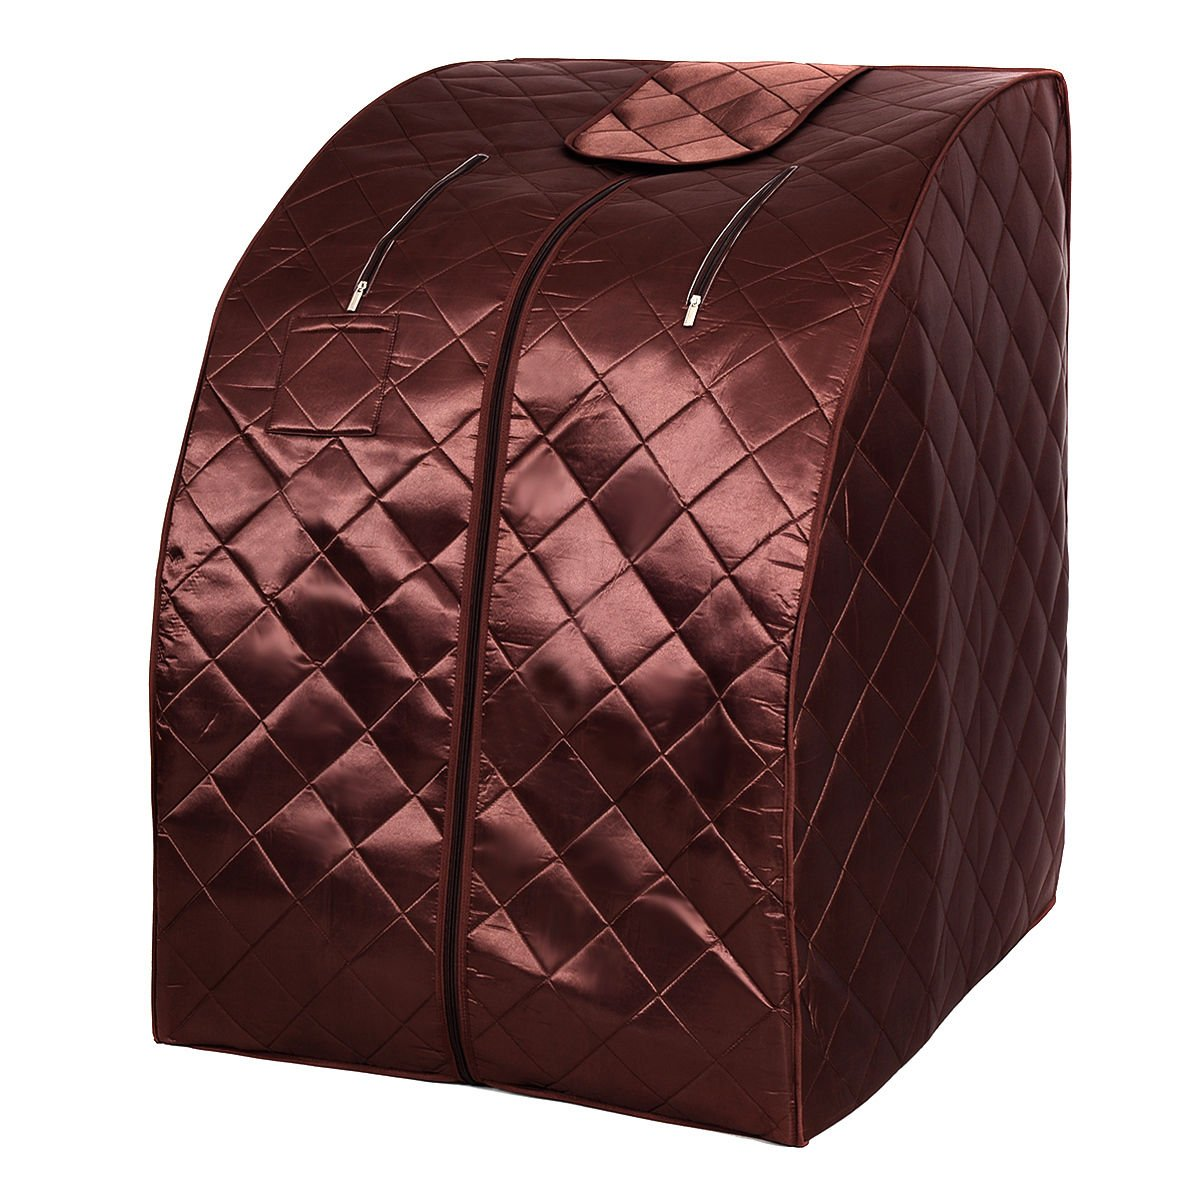 Portable Far Infrared Sauna Spa Full Body Slimming Loss Weight Detox Therapy - Coffee by Eight24hours (Image #2)